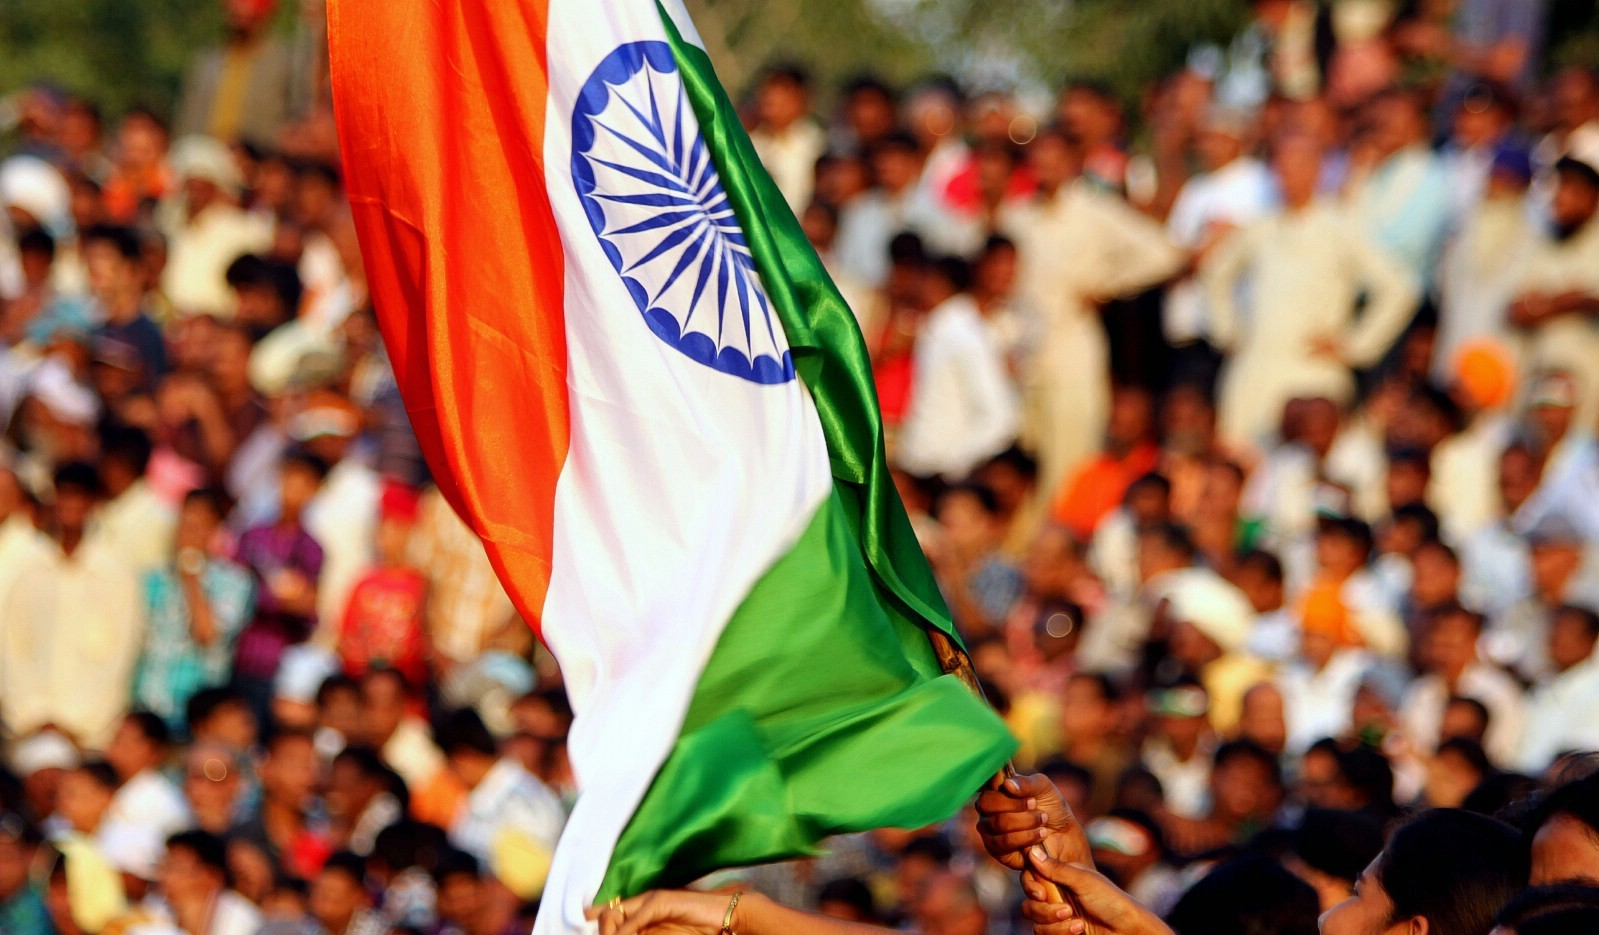 Jana Gana Mana doesn't deserve to be our National Anthem